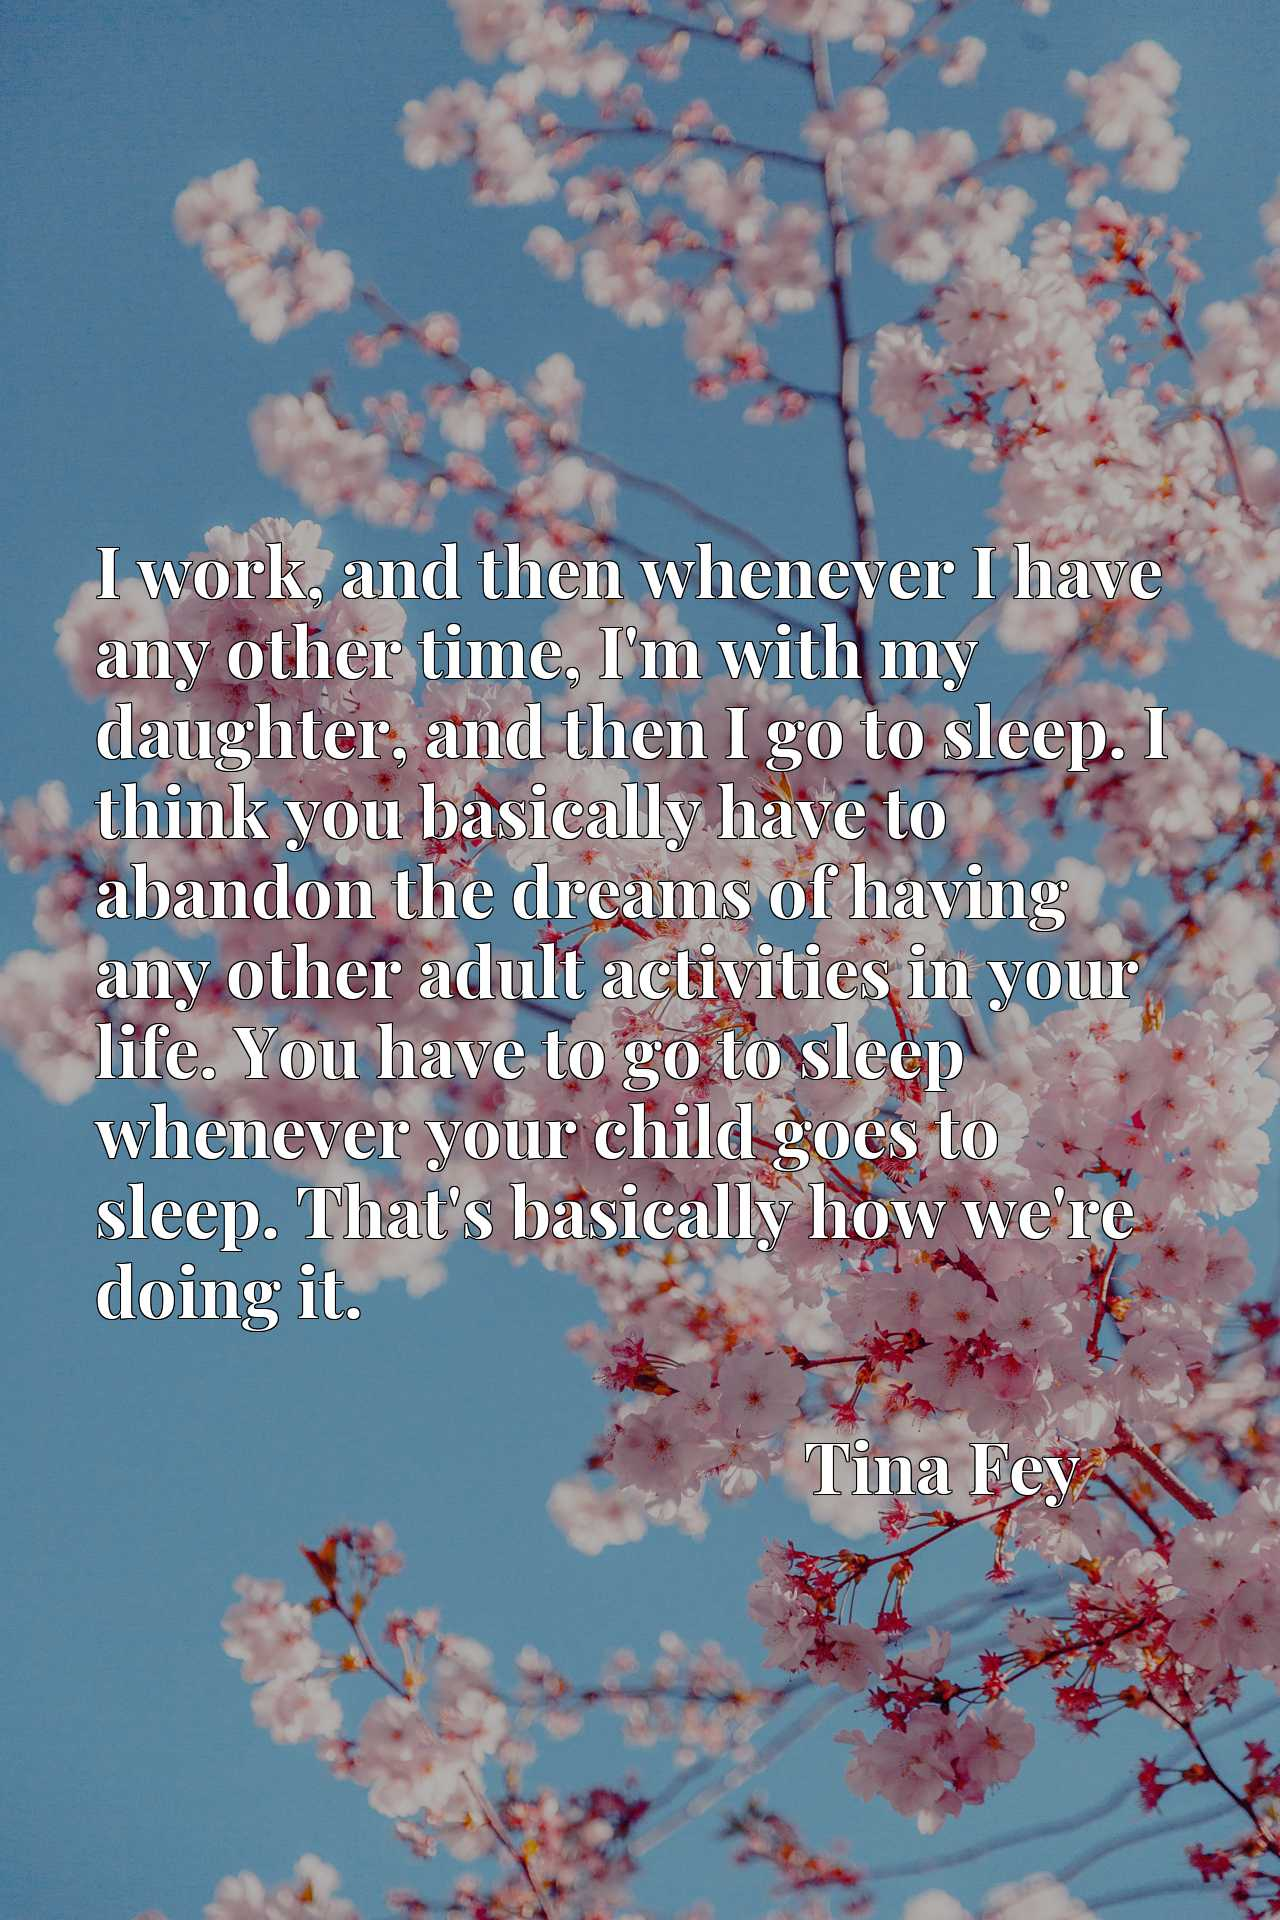 I work, and then whenever I have any other time, I'm with my daughter, and then I go to sleep. I think you basically have to abandon the dreams of having any other adult activities in your life. You have to go to sleep whenever your child goes to sleep. That's basically how we're doing it.